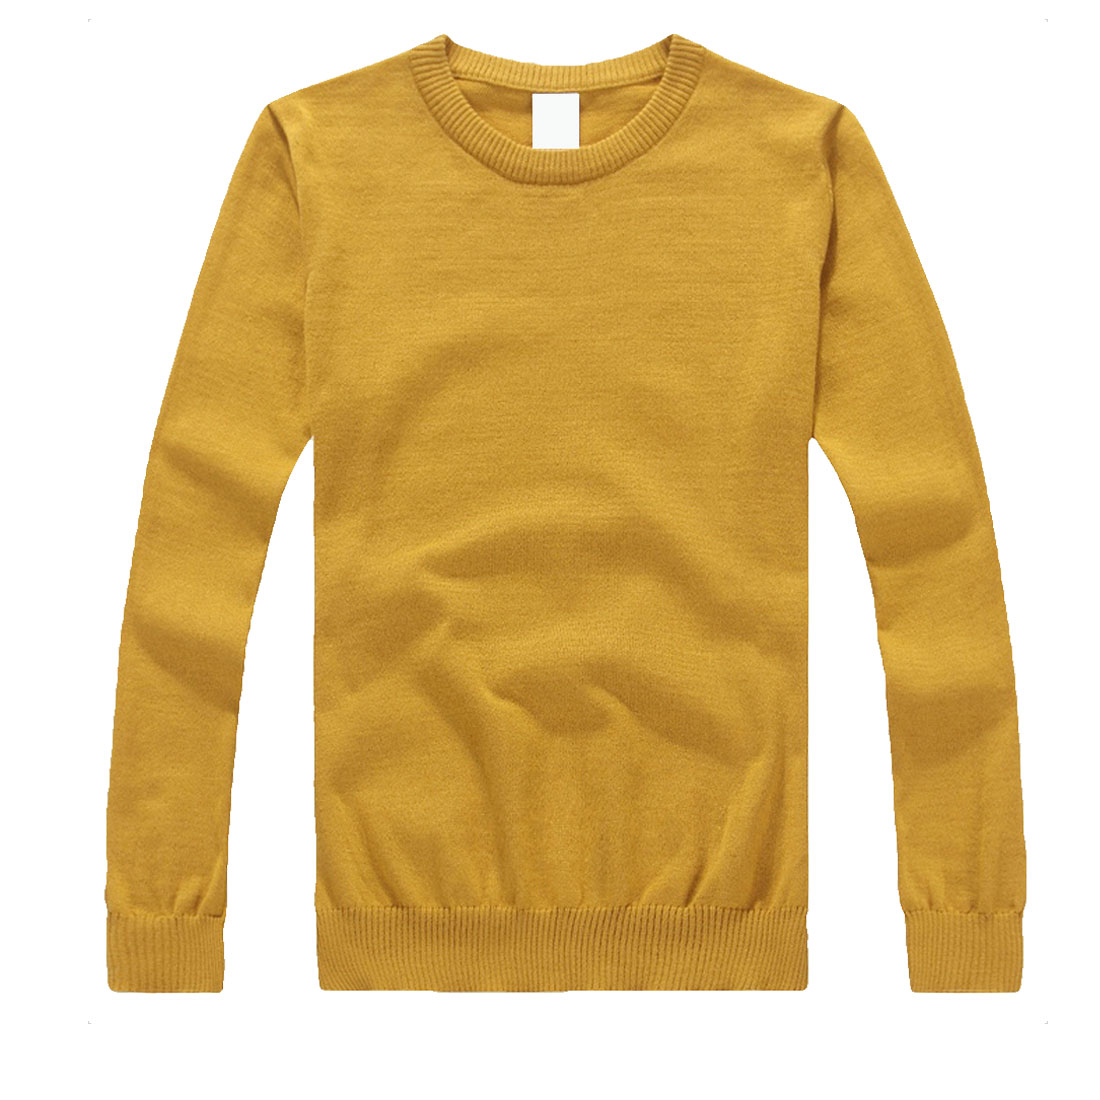 Men Mustard Stylish Long Sleeve Pullover Pure Color Simple Fall Knit Shirt S